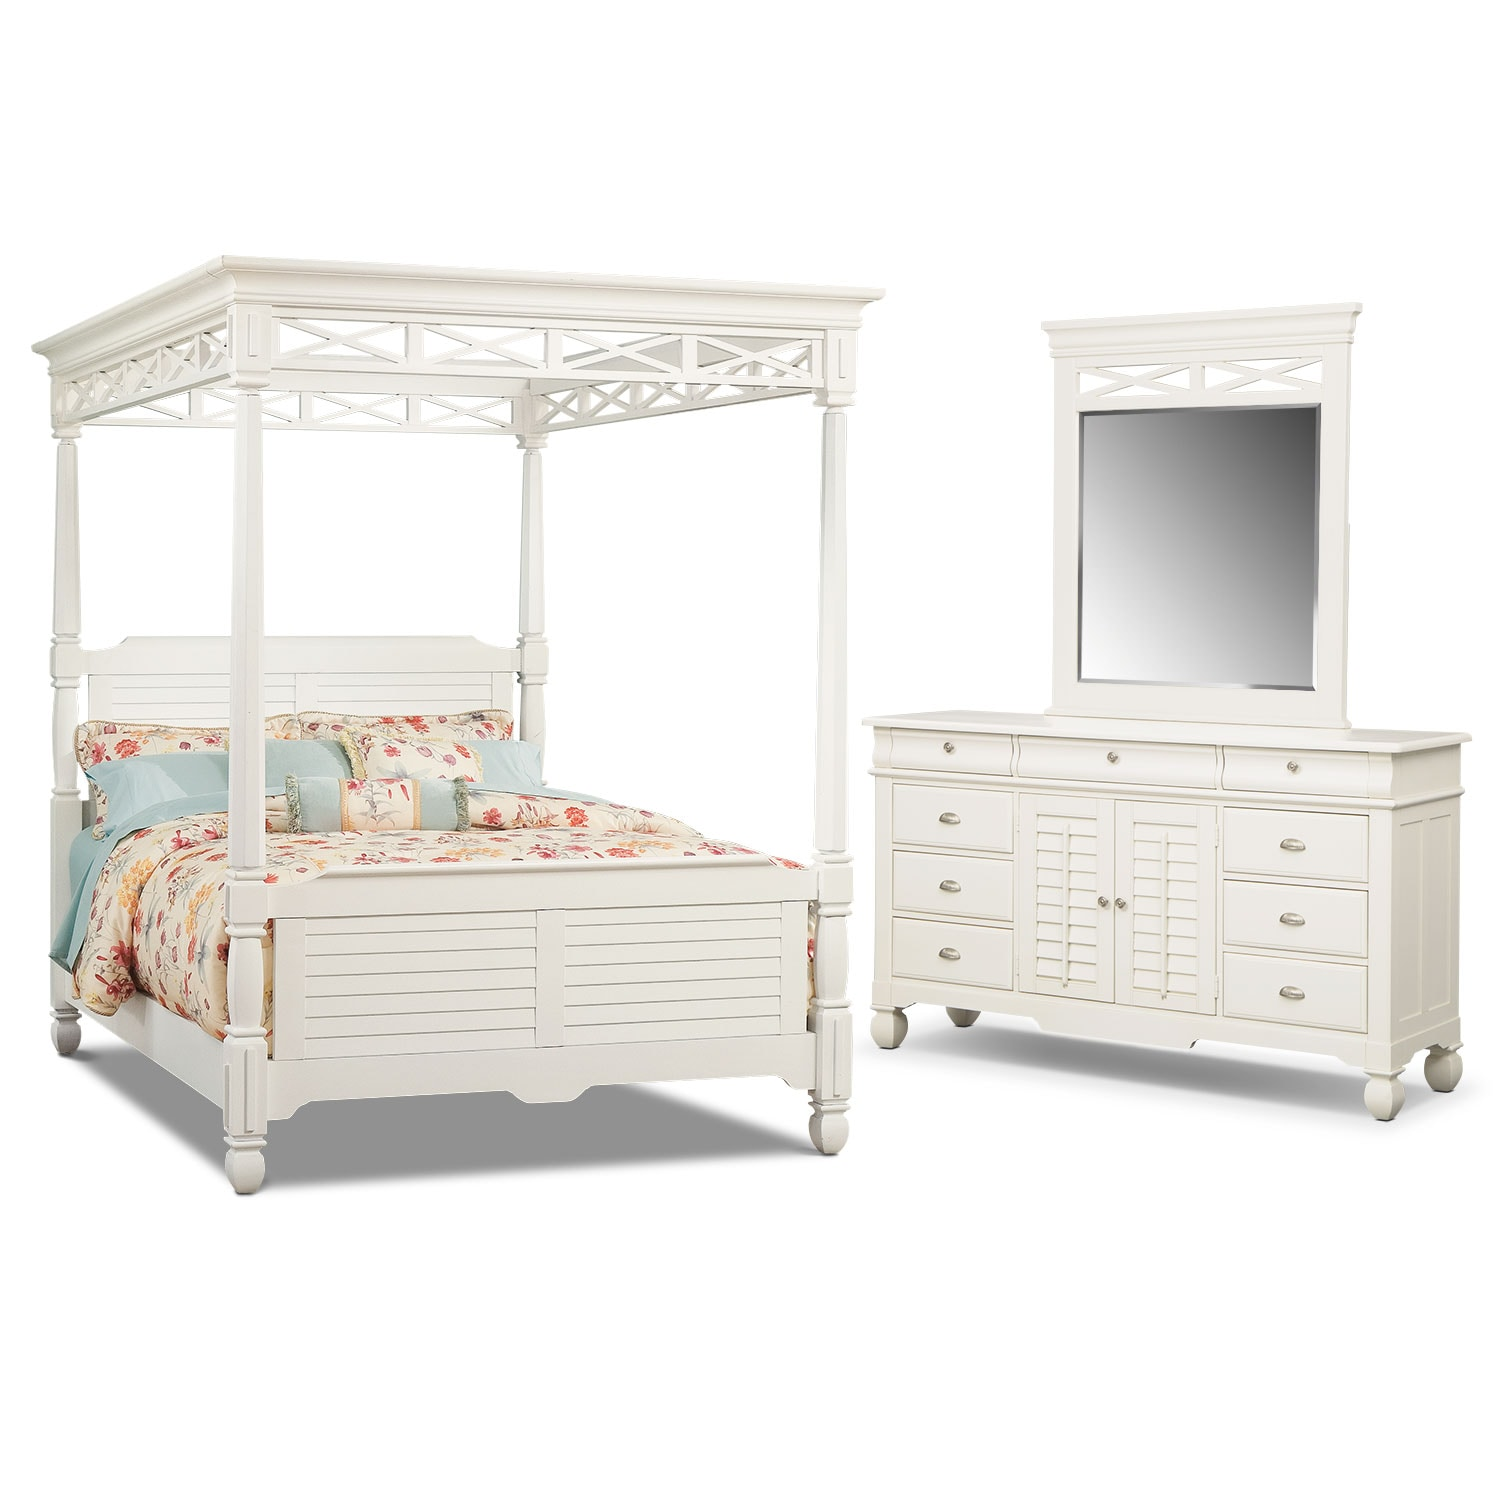 Bedroom Furniture - Plantation Cove 5-Piece Queen Canopy Bedroom Set - White